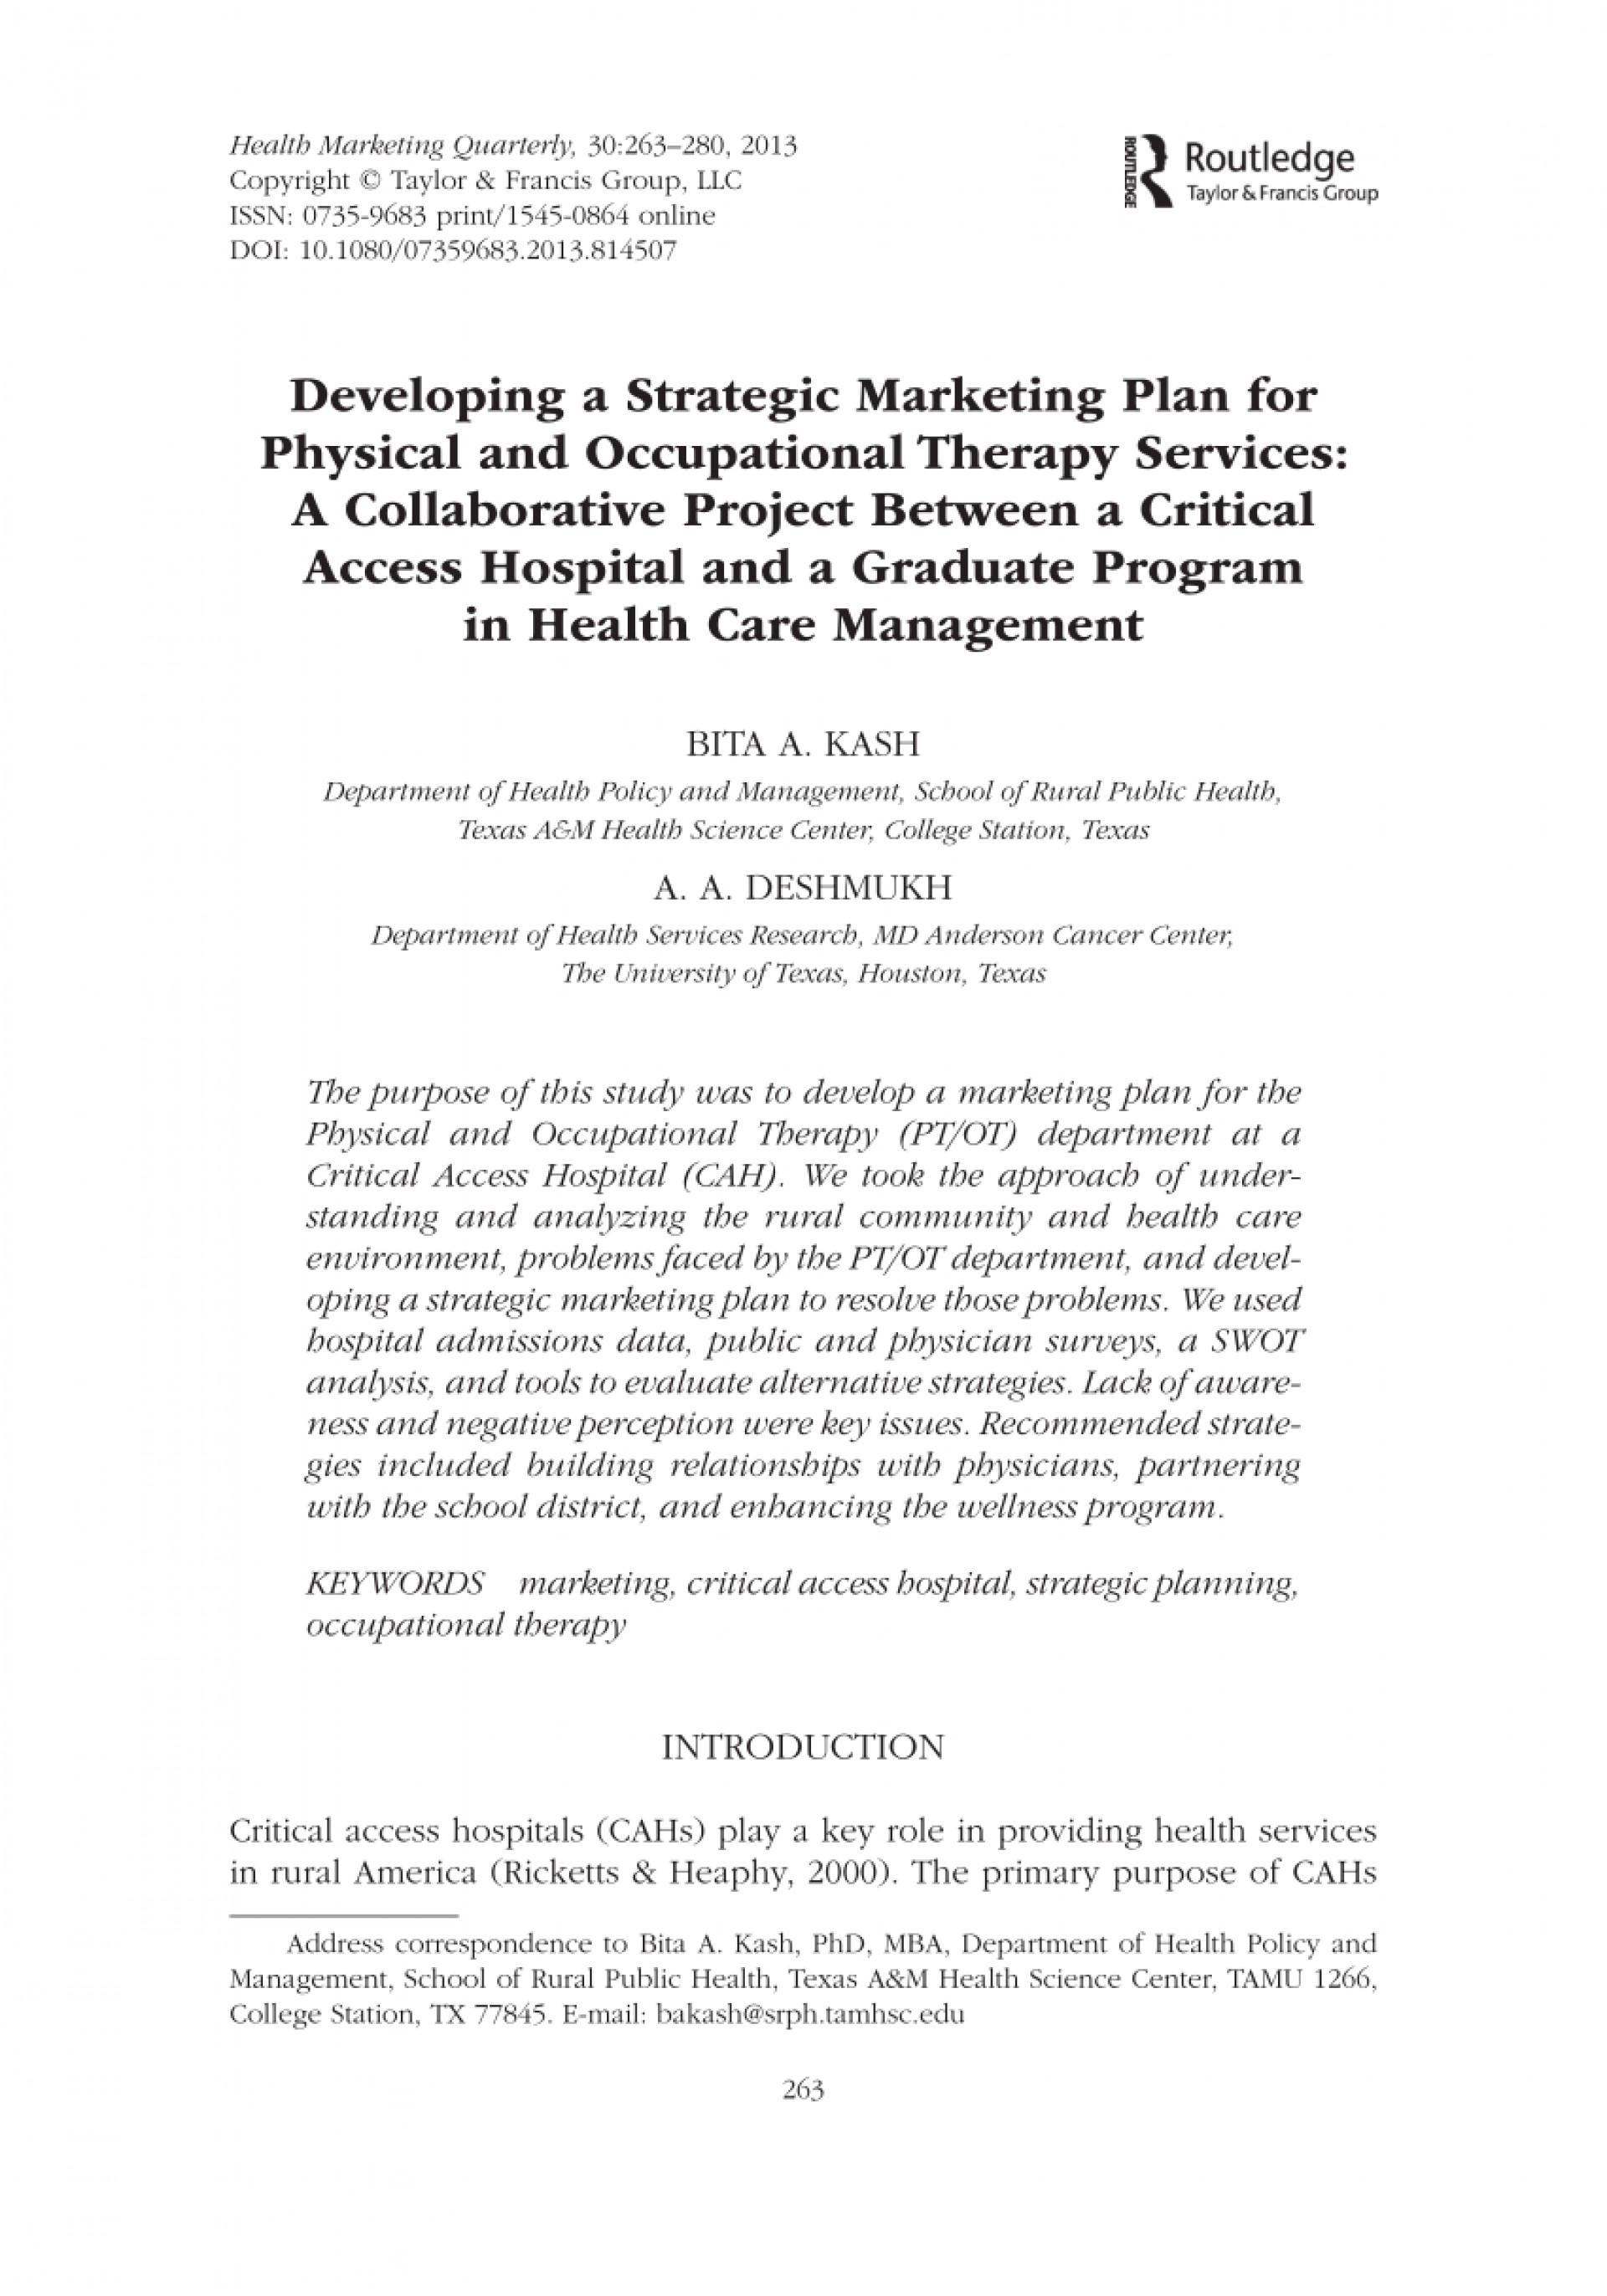 008 Research Paper Cancer Marketing Plan Mba Image Hd Largepreview For Admission Archaicawful Breast Pdf Example Prostate 1920